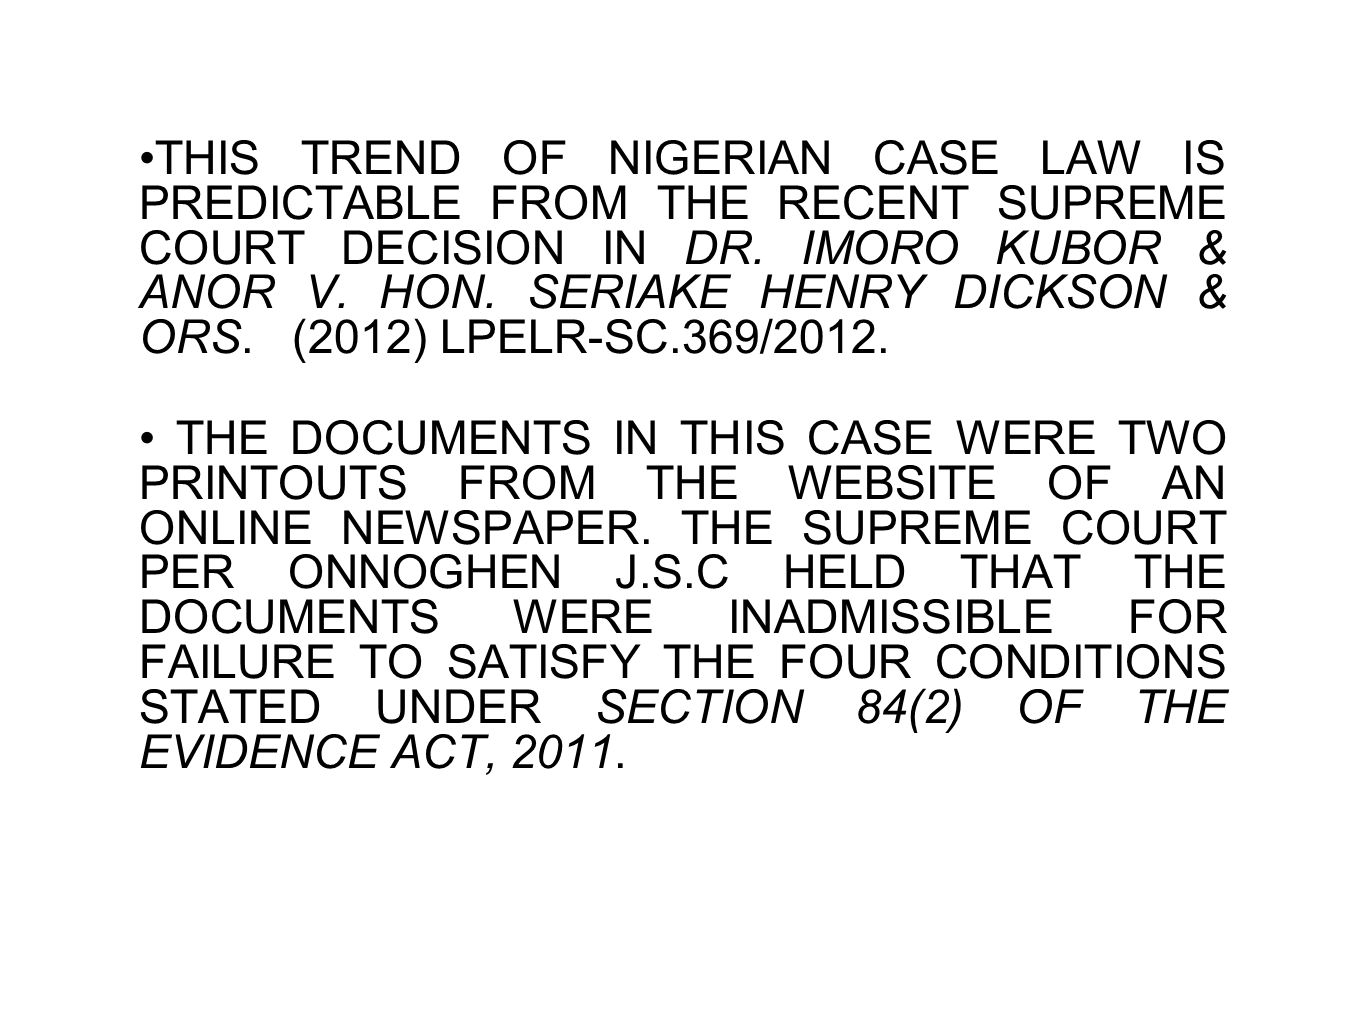 THIS TREND OF NIGERIAN CASE LAW IS PREDICTABLE FROM THE RECENT SUPREME COURT DECISION IN DR. IMORO KUBOR & ANOR V. HON. SERIAKE HENRY DICKSON & ORS. (2012) LPELR-SC.369/2012.